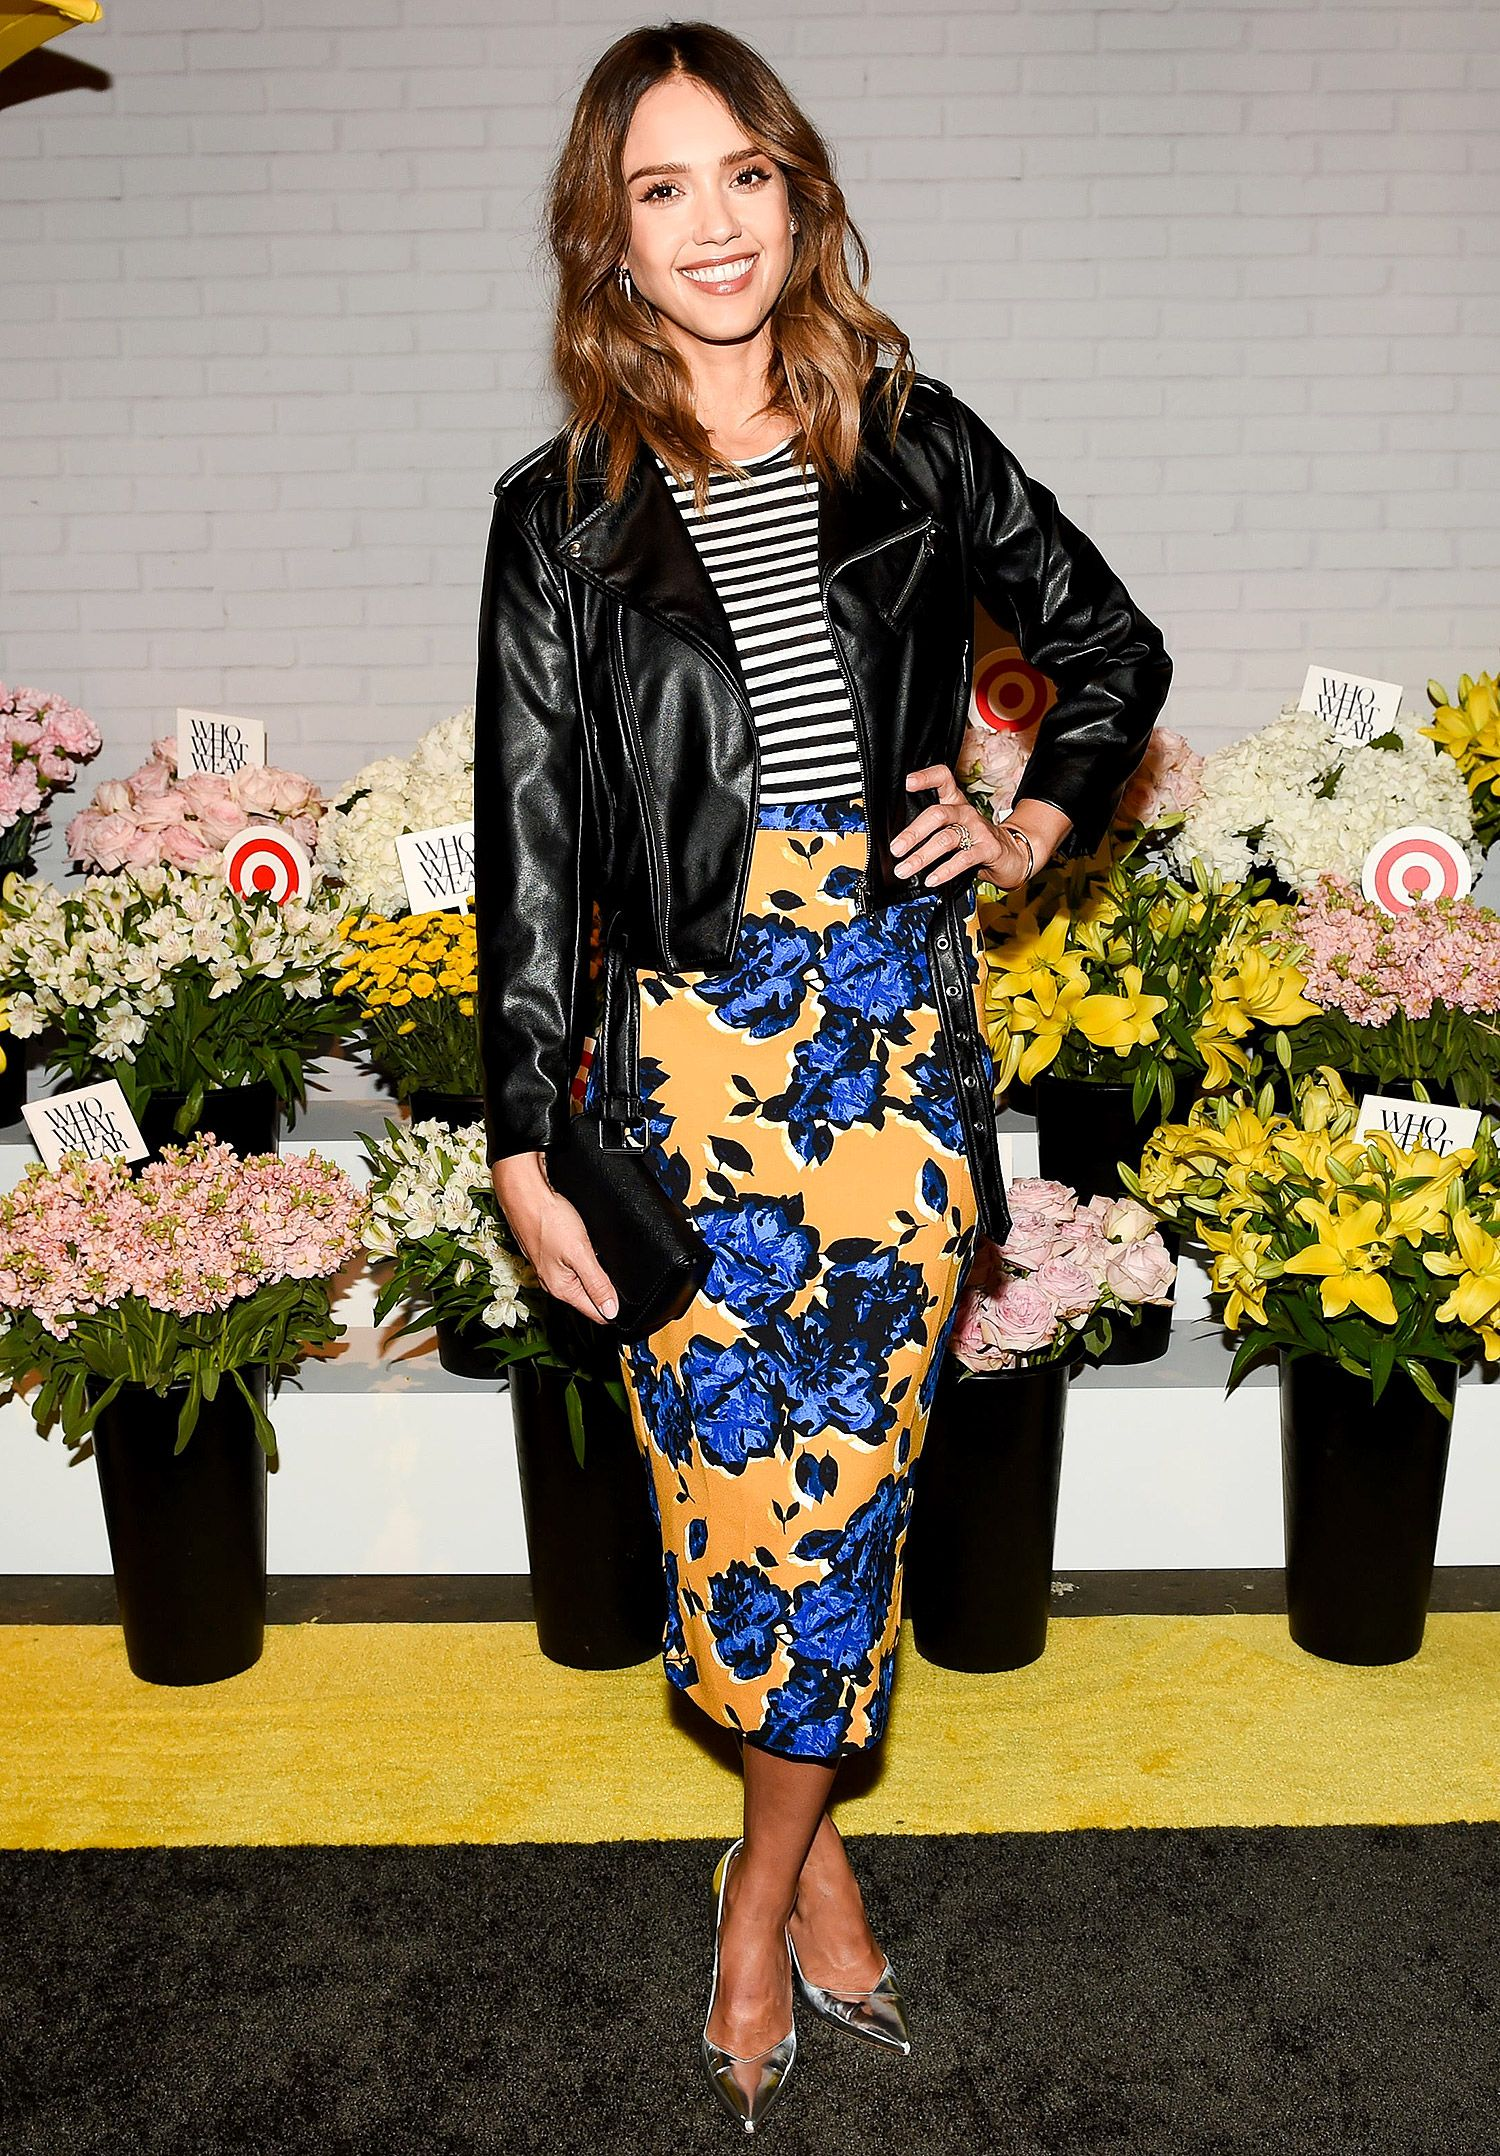 b1d44ec3f JESSICA ALBA And here's an example of when contrasting prints are the way  to go. A floral and stripe is the ultimate cool-girl mix, and Jessica's  succeeds ...